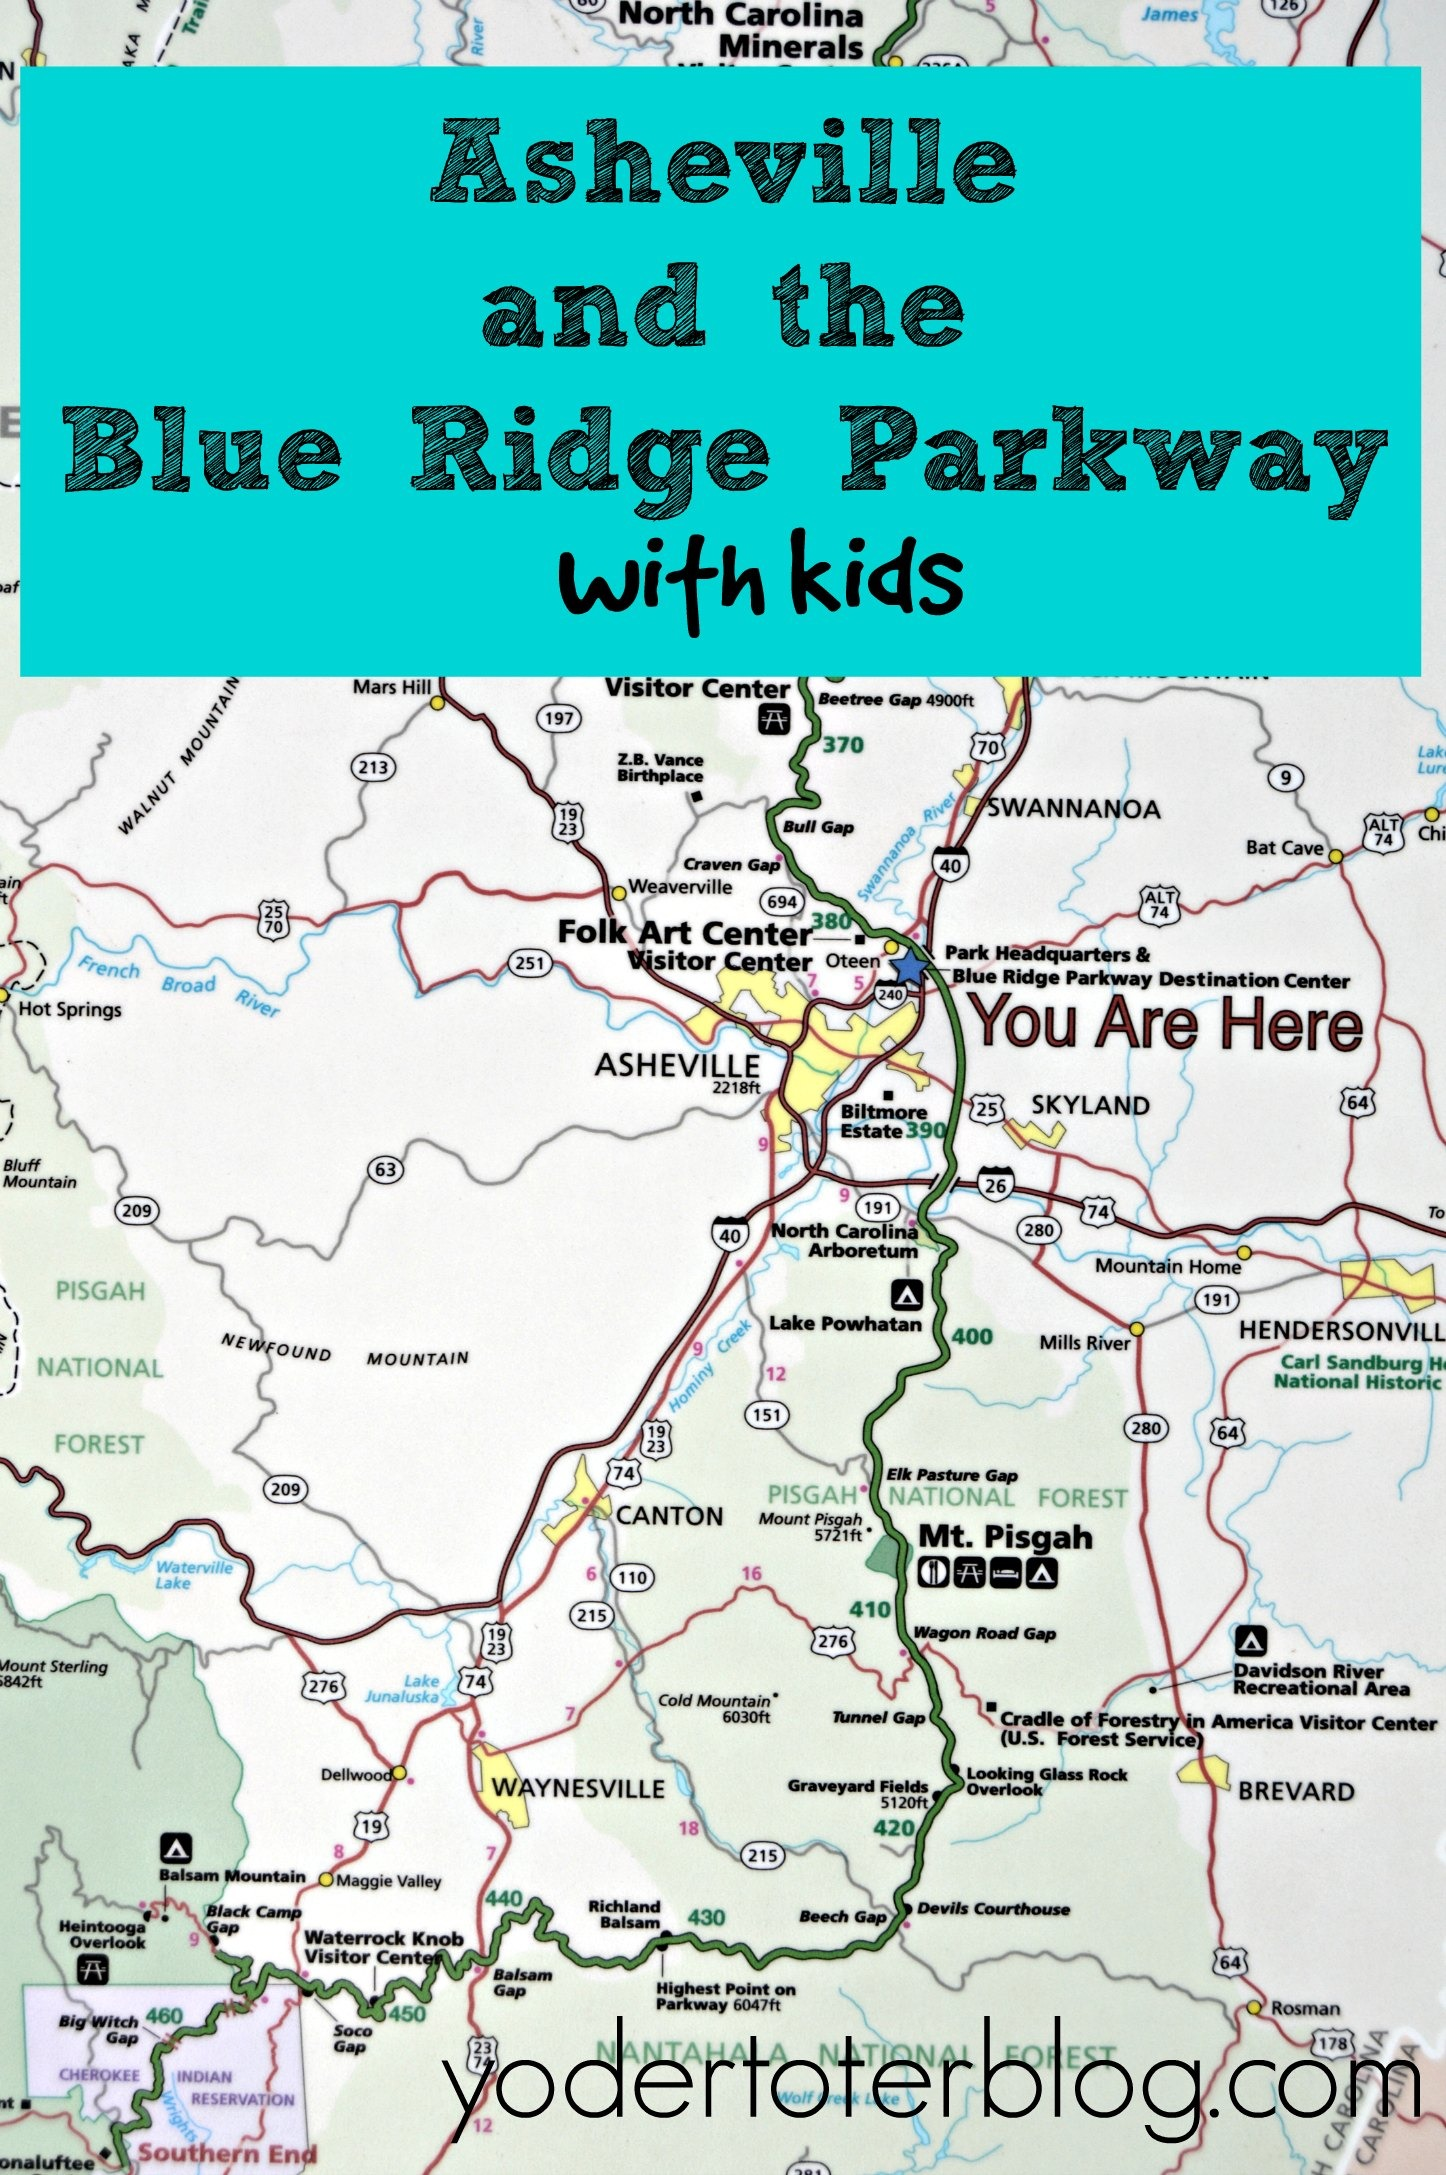 Asheville and the Blue Ridge Parkway with kids.